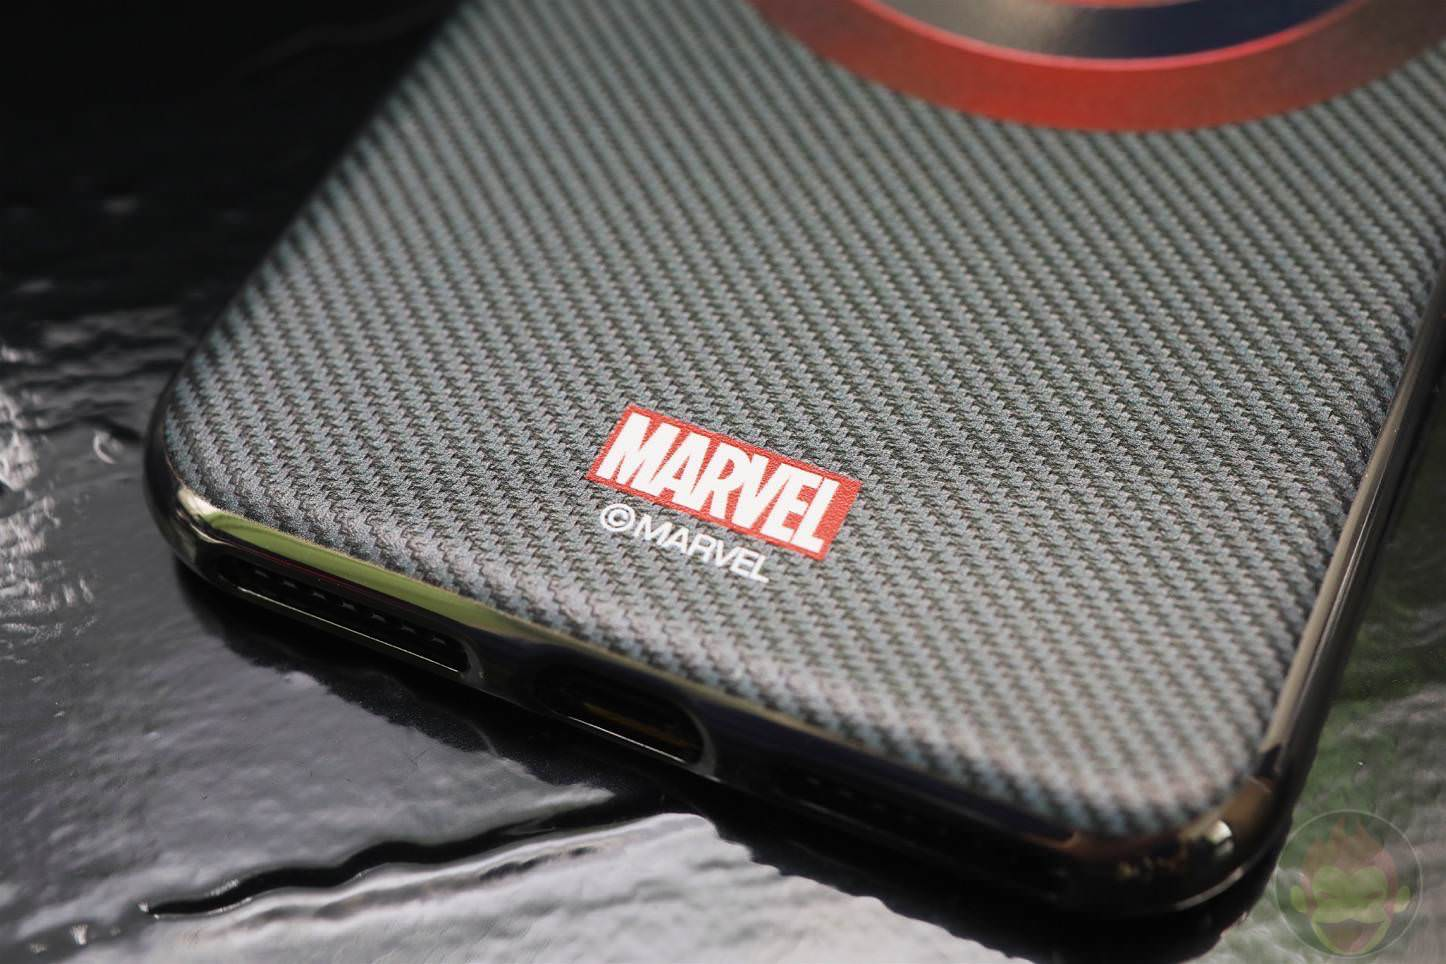 MARVEL-Design-iPhone-7-Plus-Case-and-Ring-01.jpg